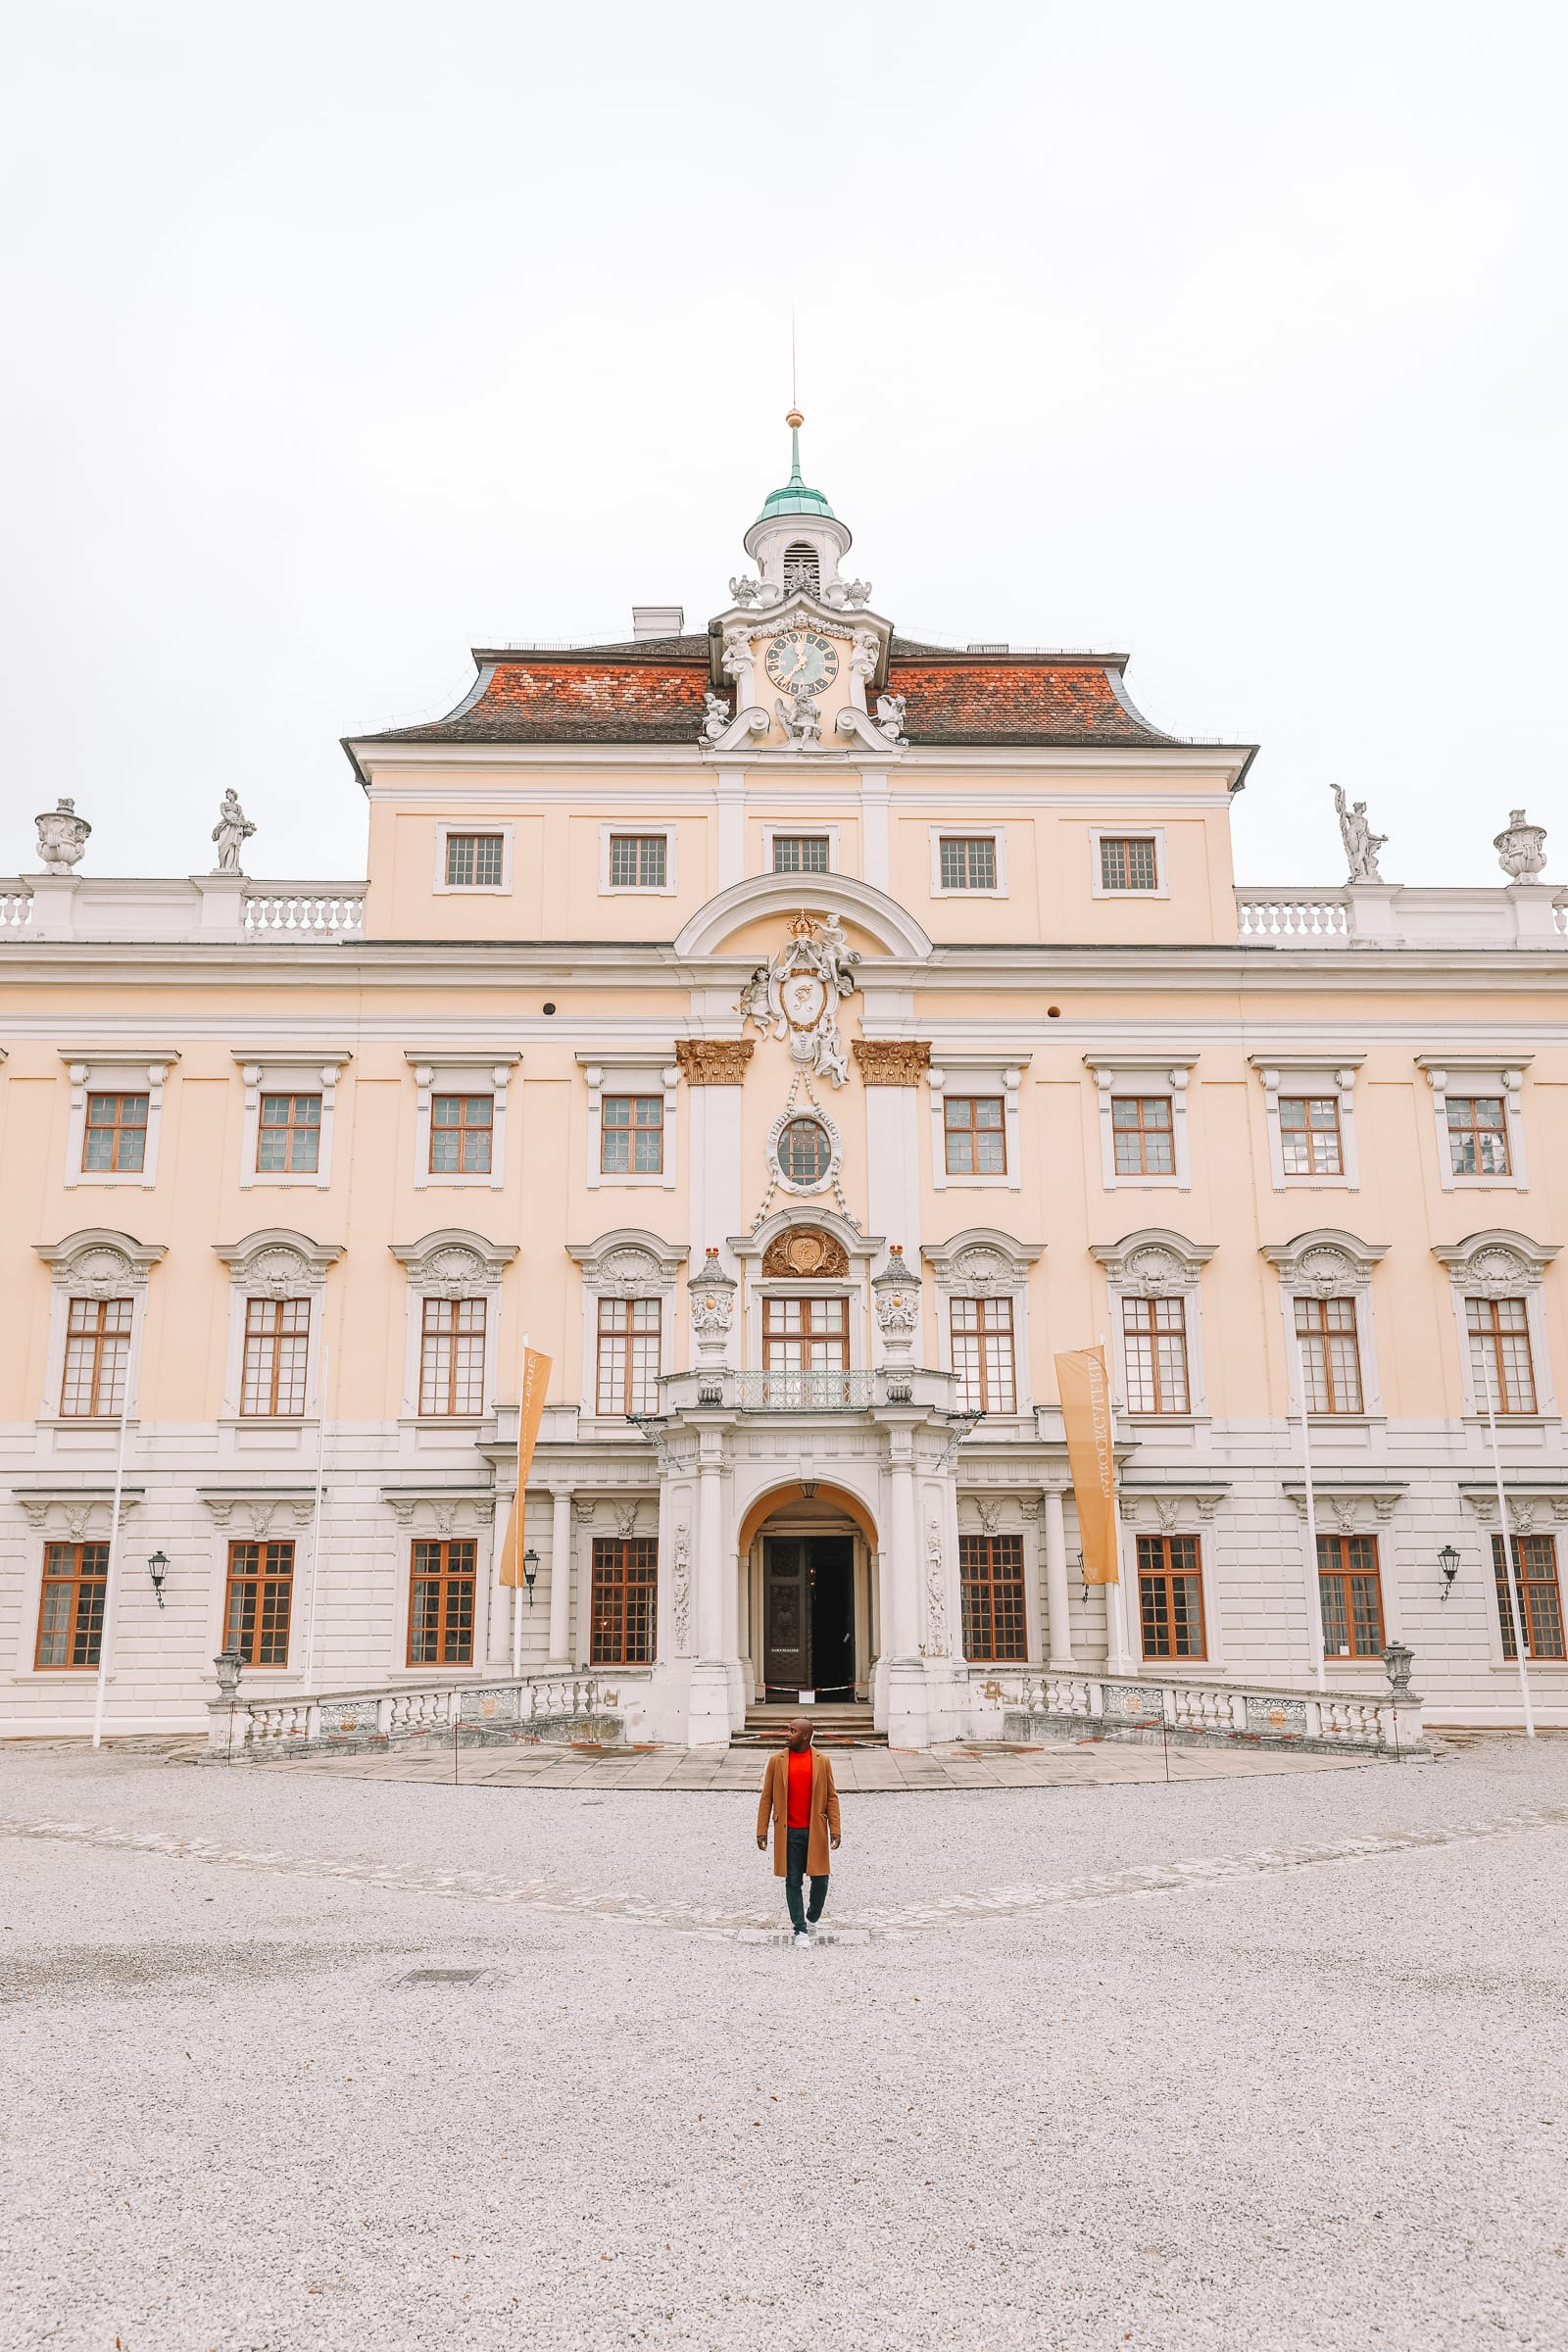 Stuttgart Ludwigsburg The Beautiful Baroque Ludwigsburg Palace In Stuttgart Germany